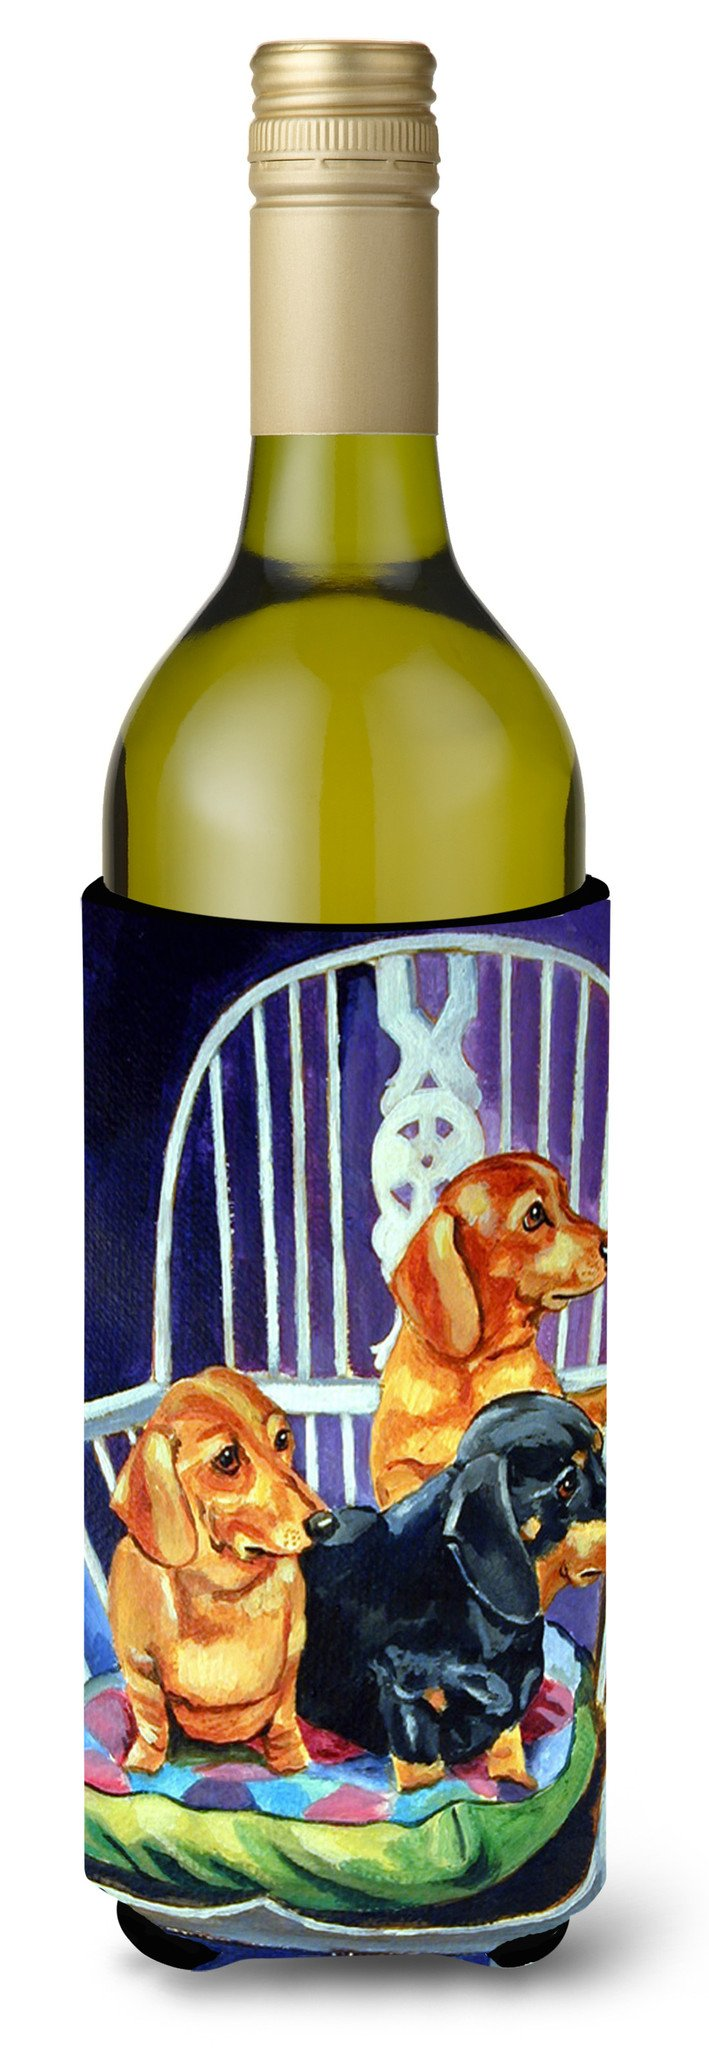 Buy this Dachshund Two Red and a Black and Tan Wine Bottle Beverage Insulator Beverage Insulator Hugger